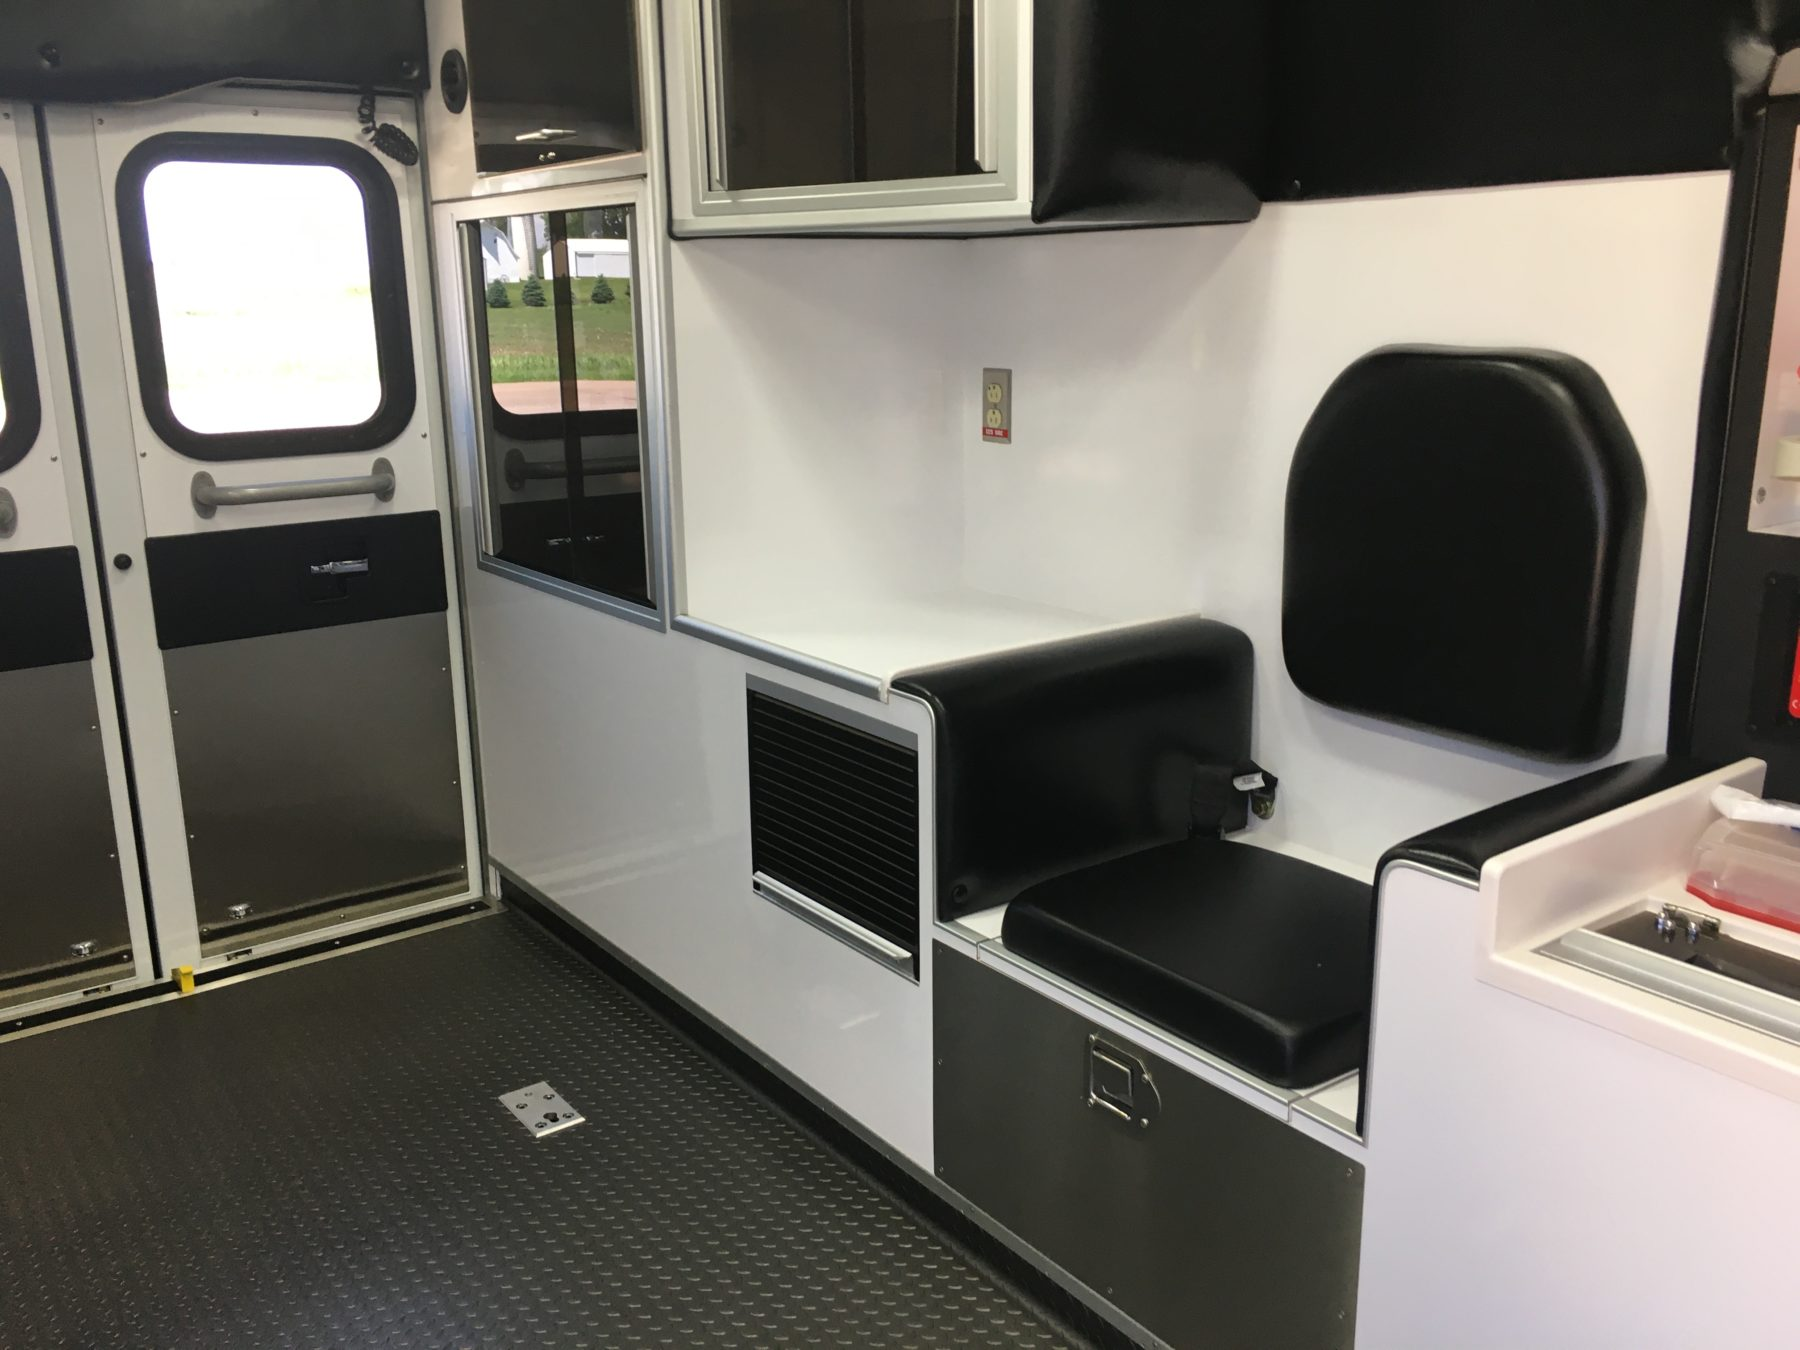 2021 Ford F450 4x4 Heavy Duty Ambulance For Sale – Picture 12